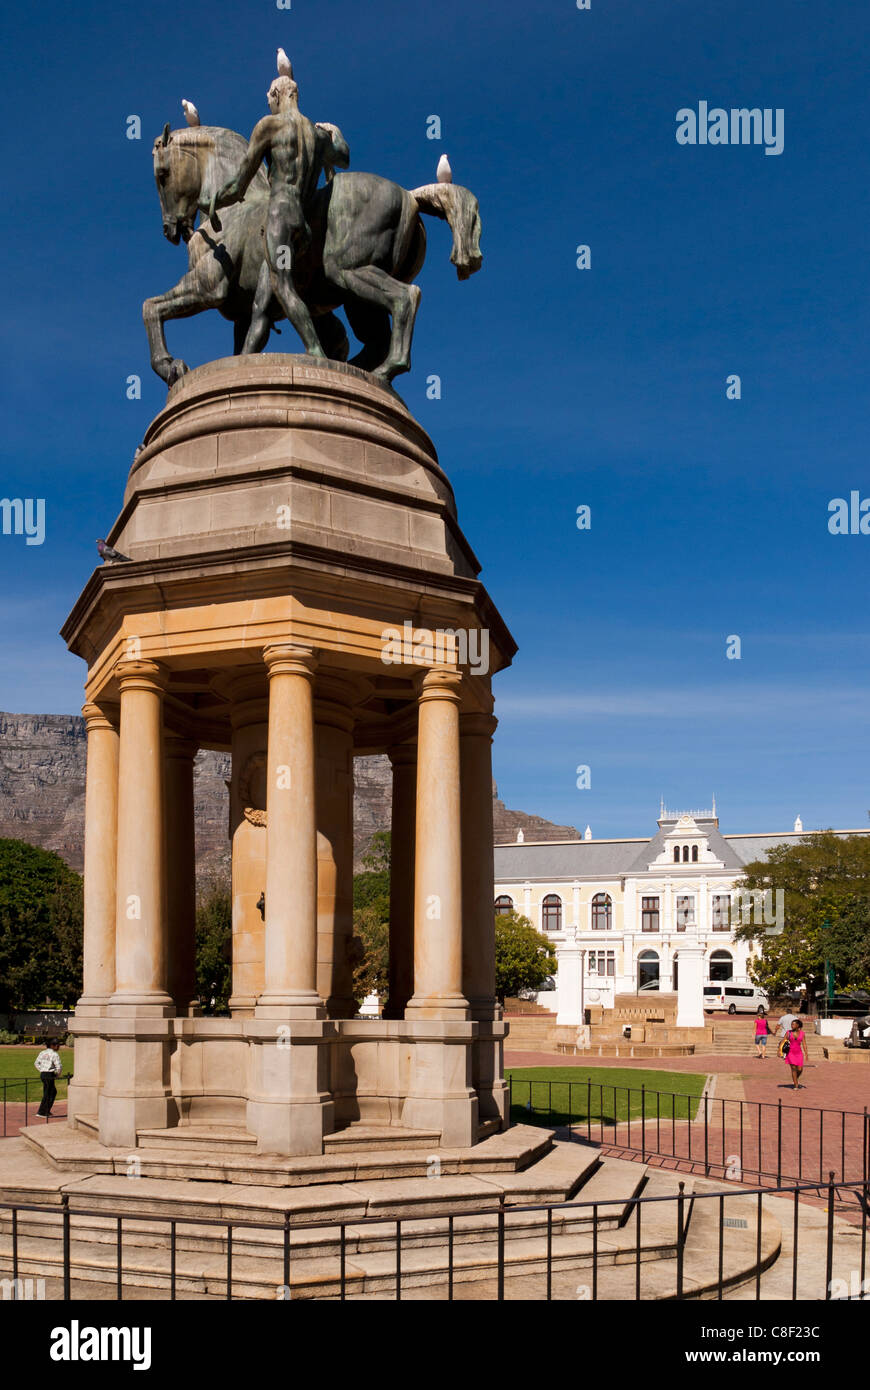 Delville Wood Memorial and South African Museum. Company's Garden, Cape Town, South Africa. - Stock Image